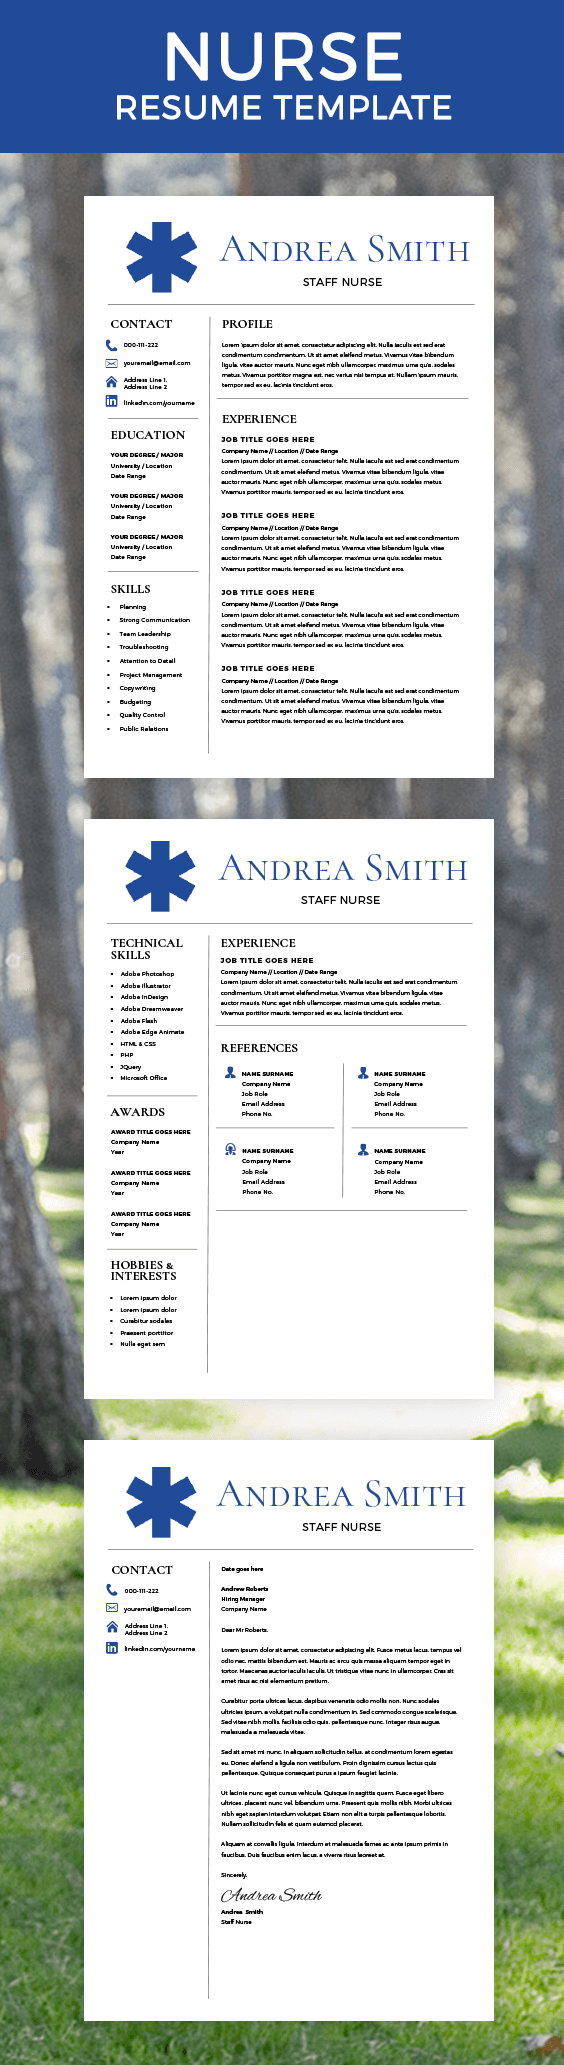 Nurse Resume Template - Nurse Staff - Top Resume Templates - CV ...